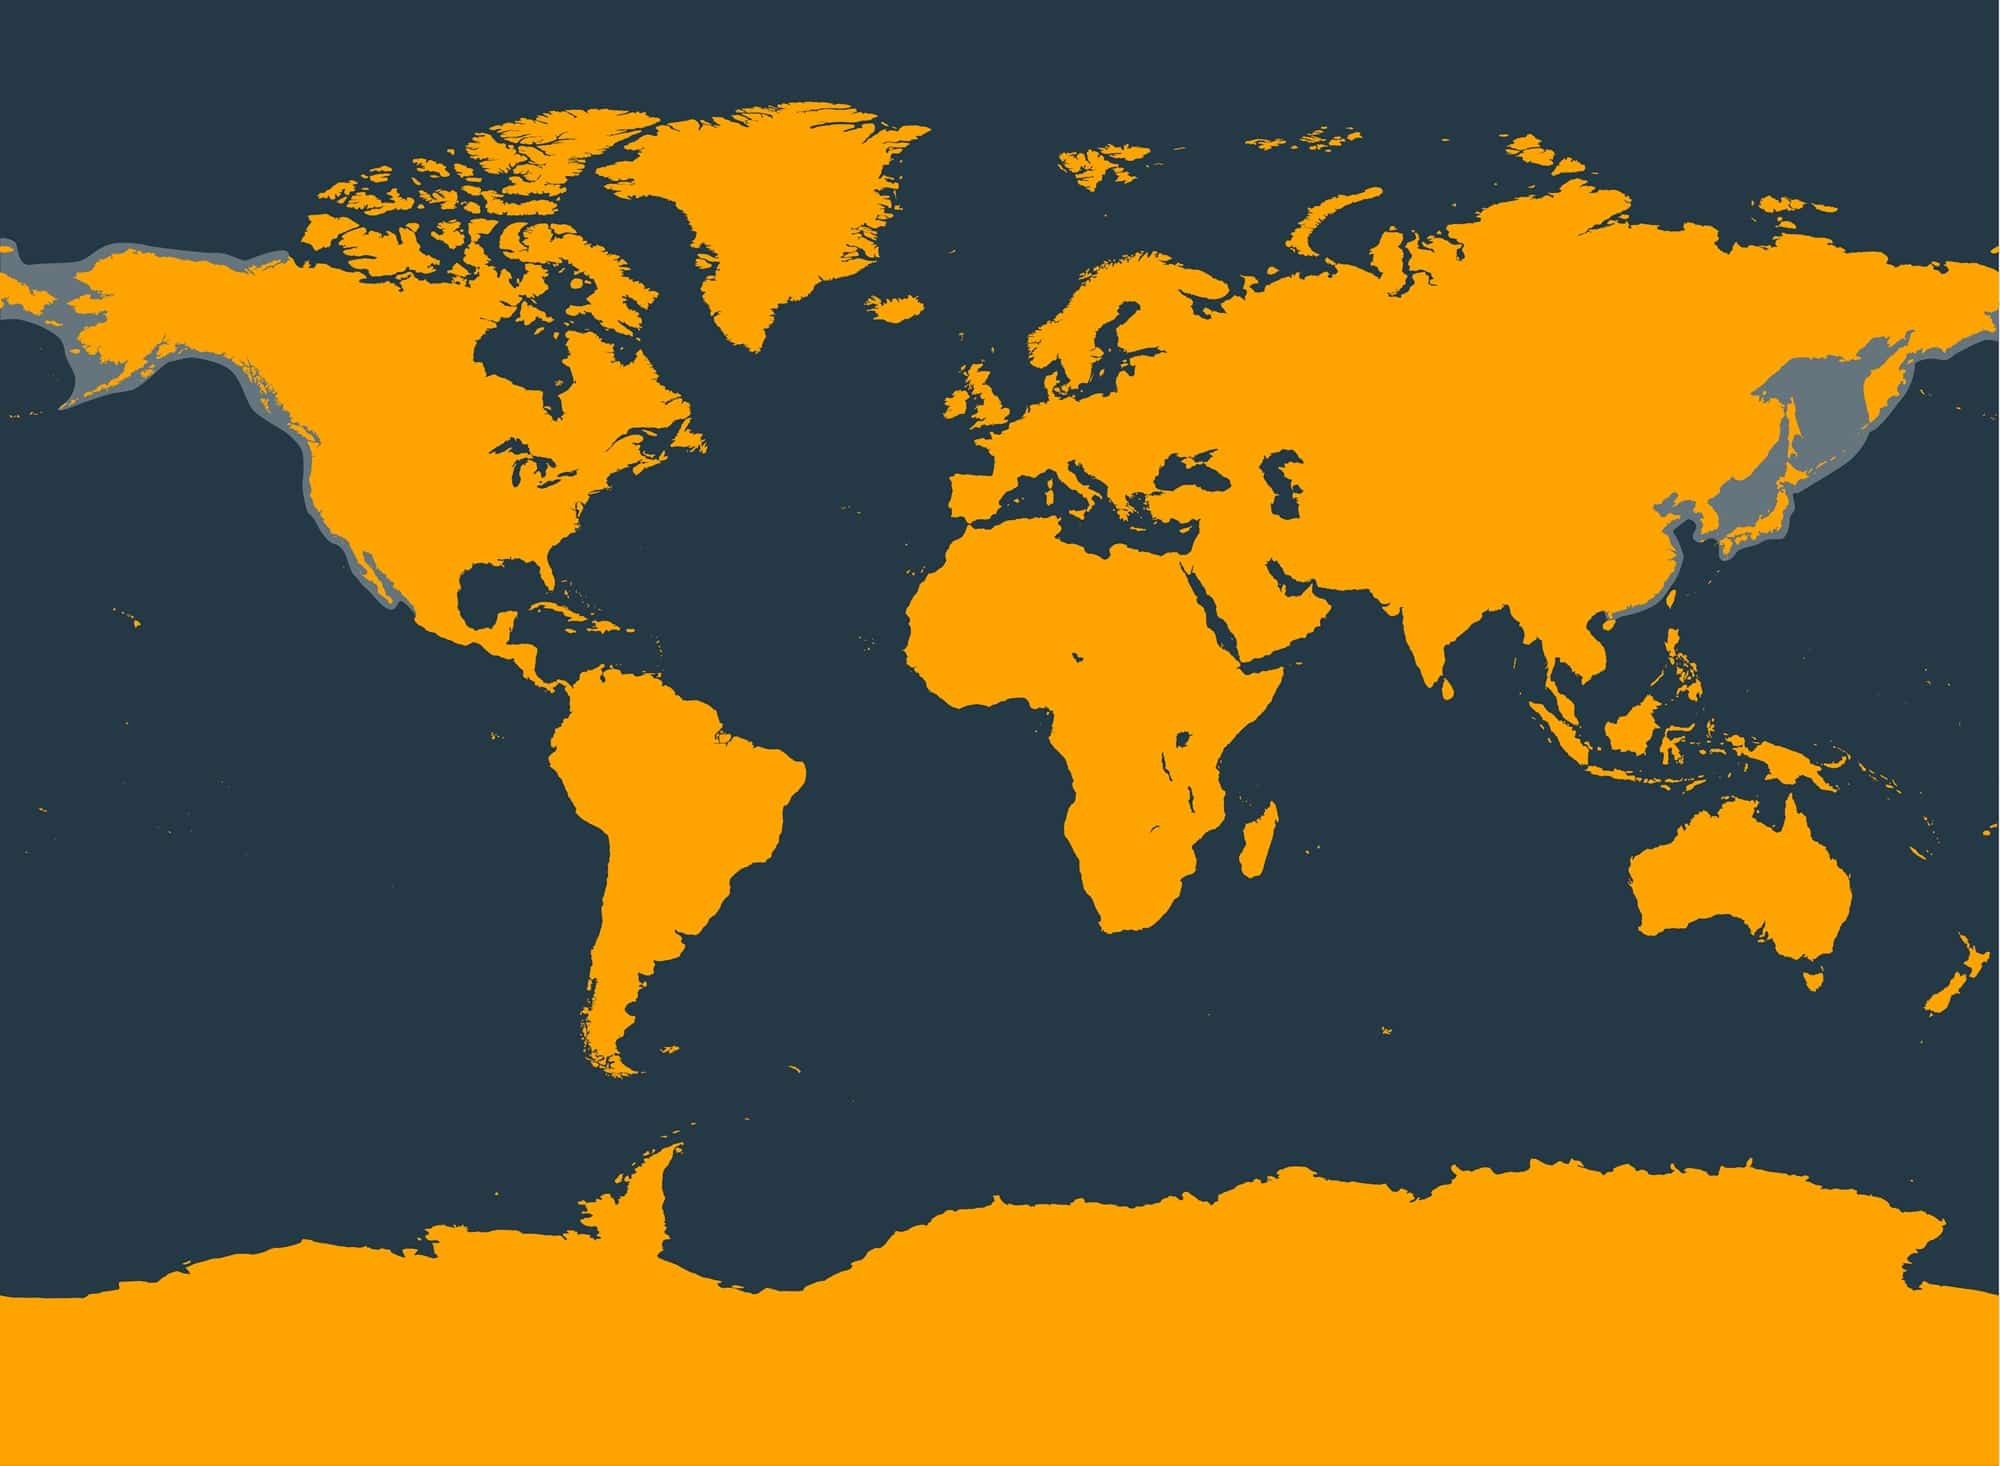 Gray whale distribution map